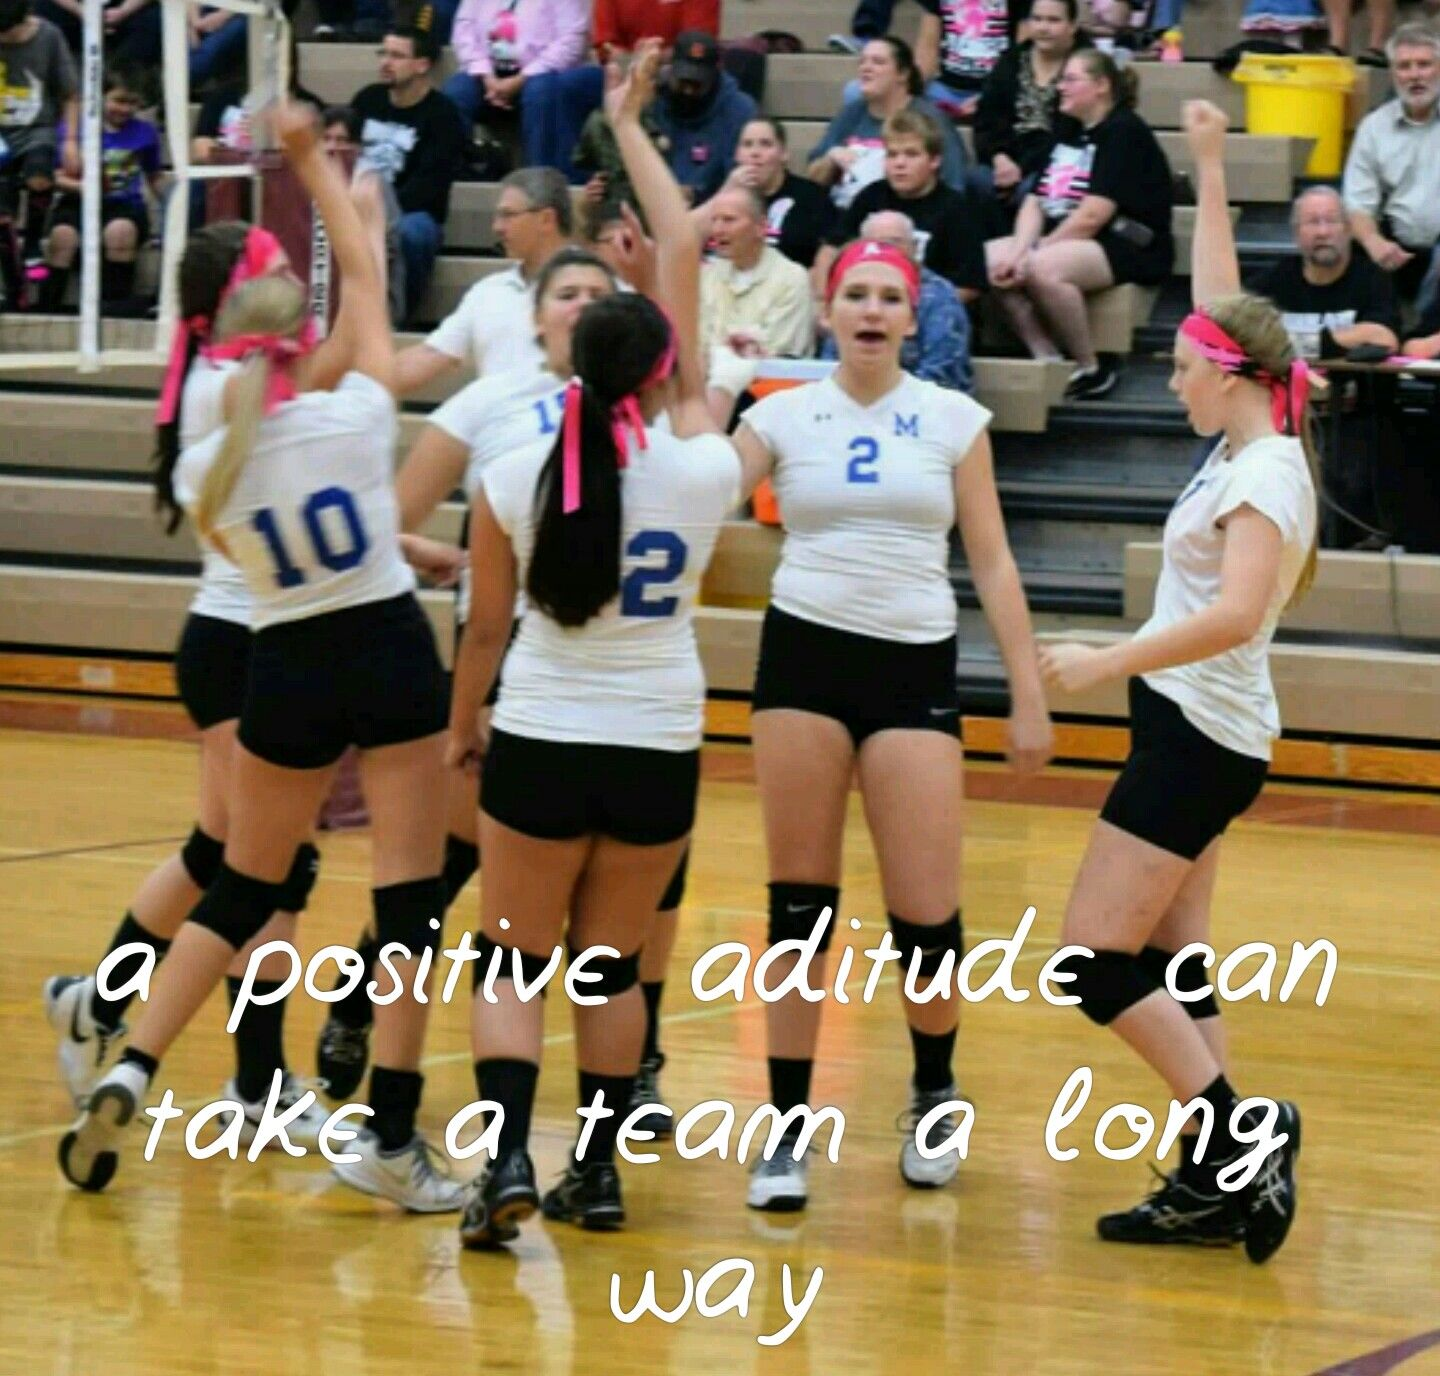 Pin By Phynix Rickett On Volleyball Quotes Volleyball Inspiration Volleyball Quotes Volleyball